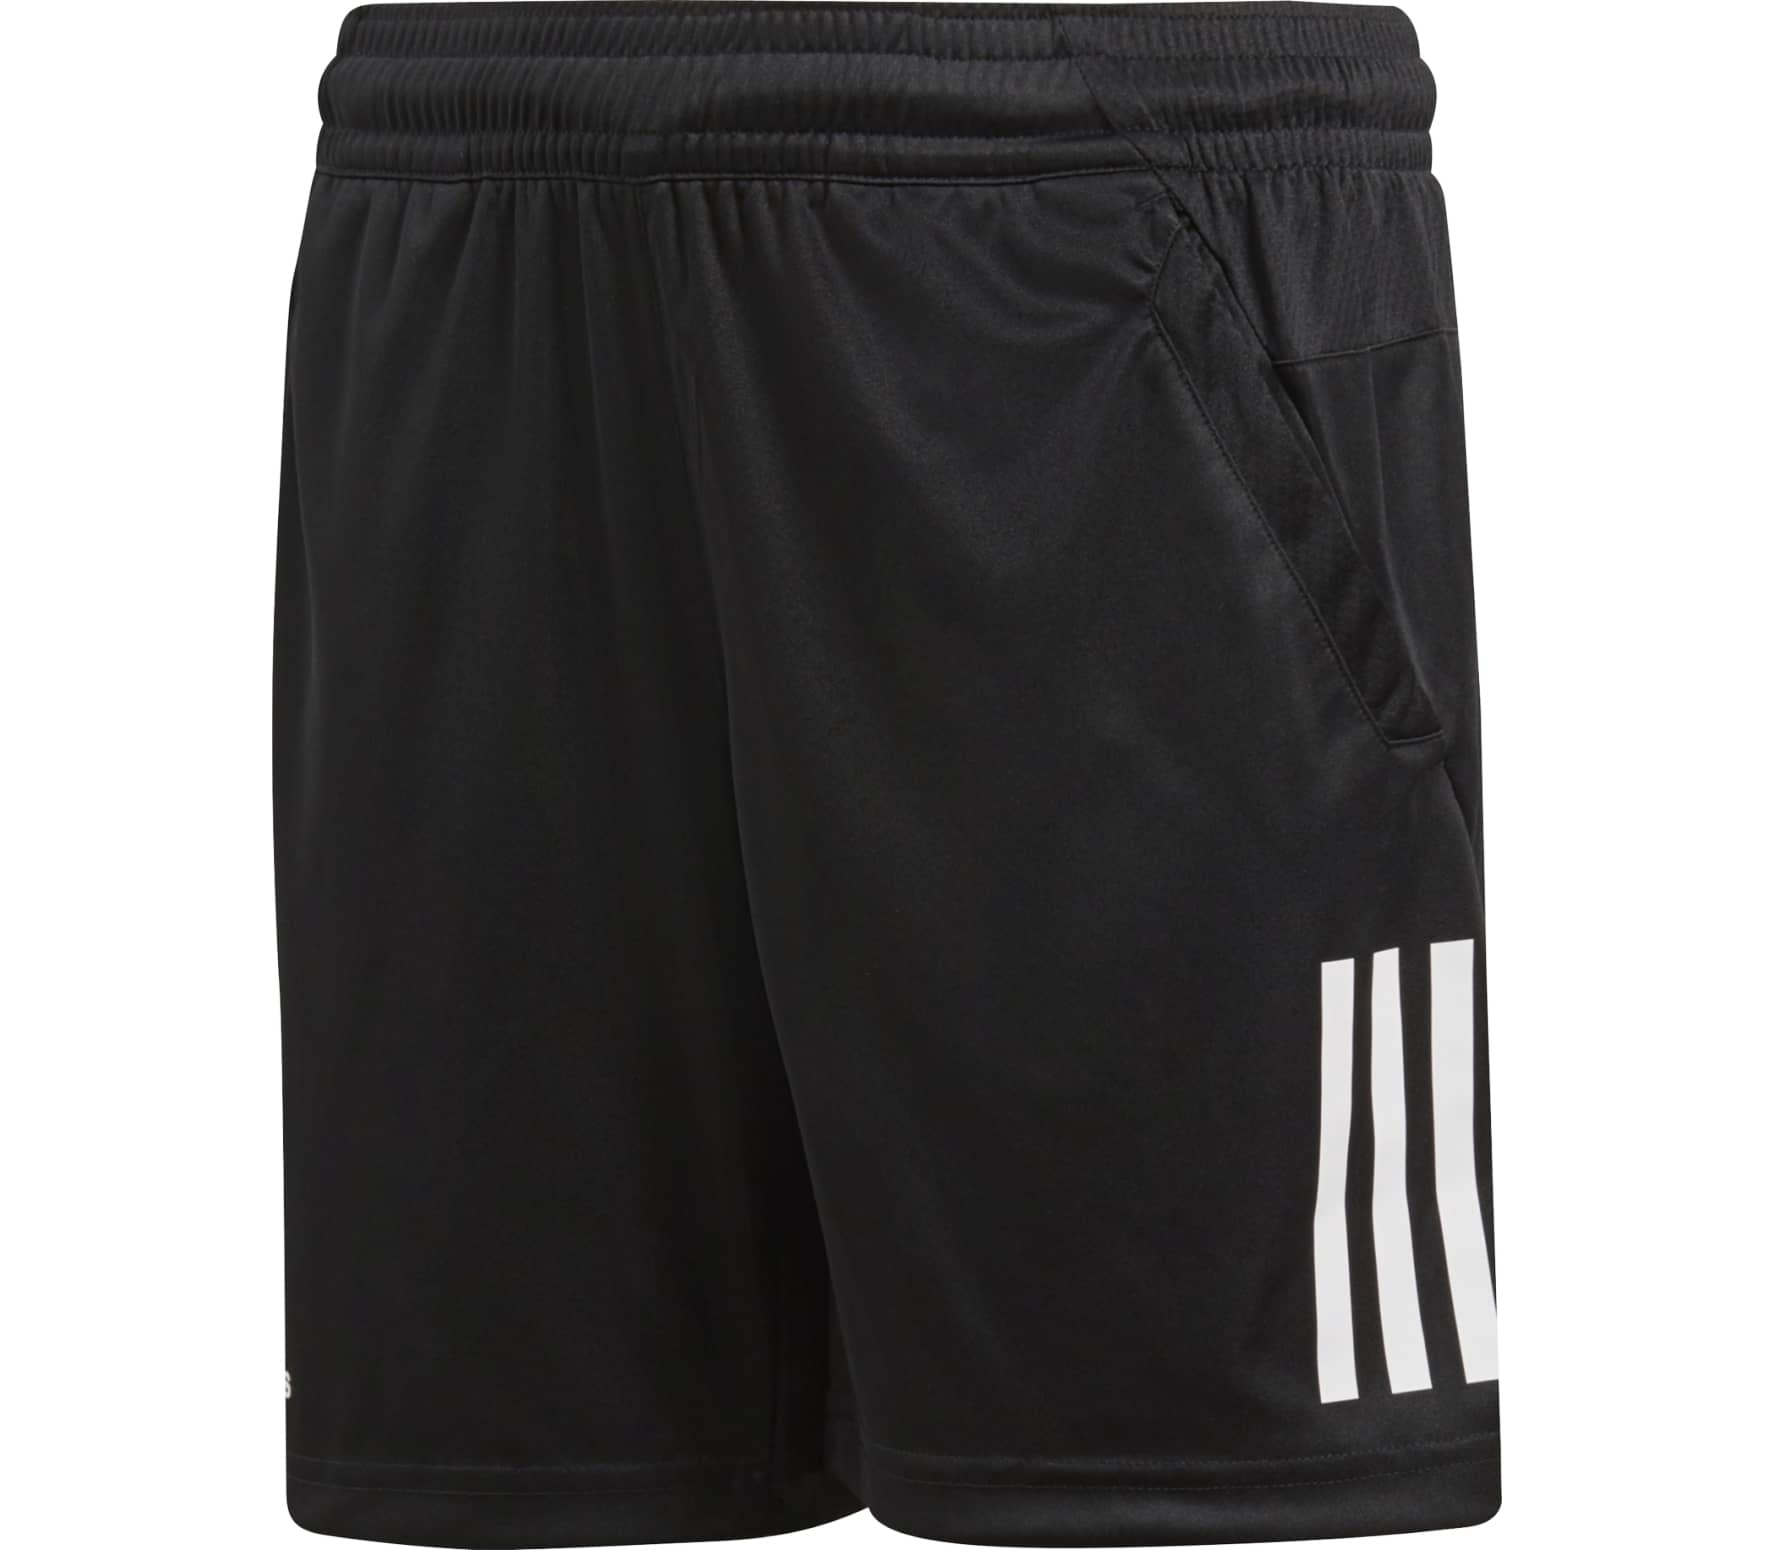 a95d9b6c98d2d1 Adidas - Boys 3-Stripes Club Children tennis shorts (black) - buy it ...